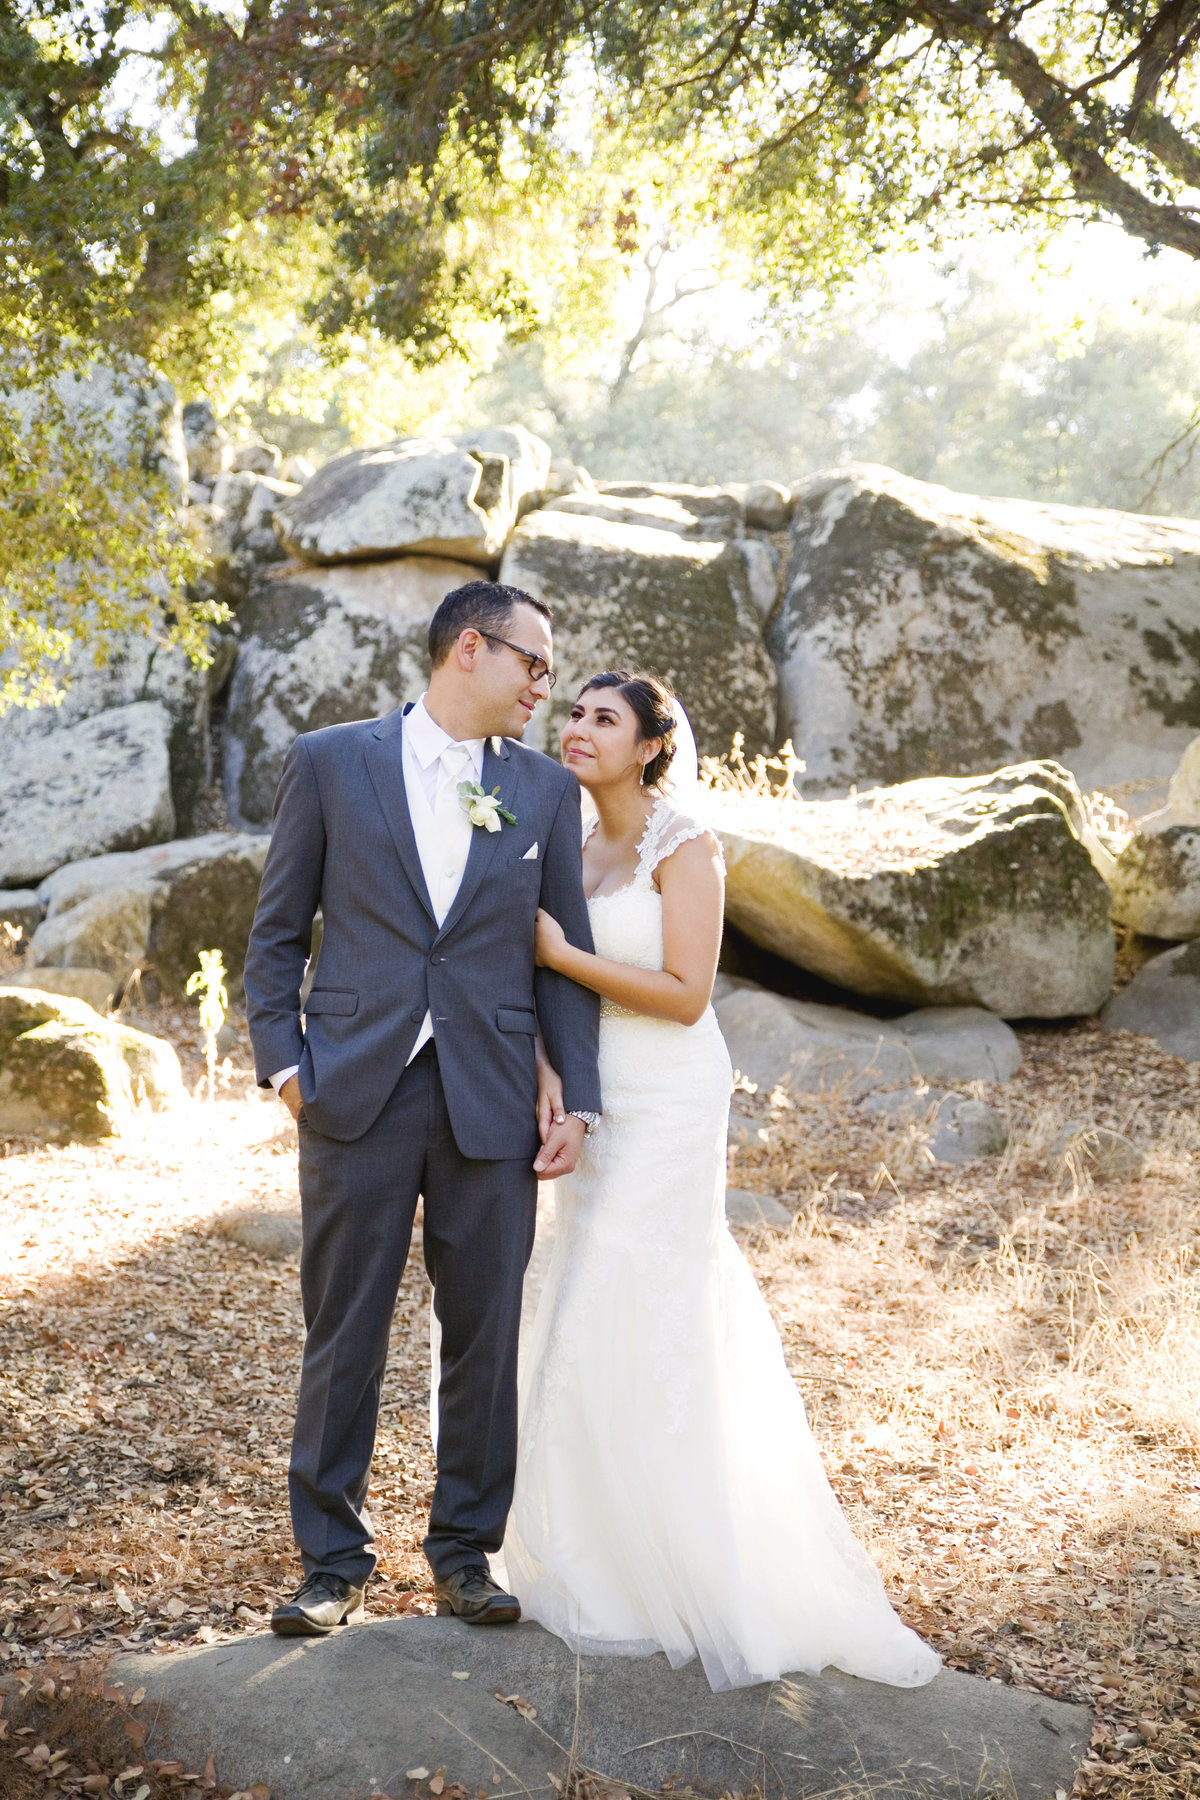 Katherine_beth_photography_San_diego_wedding_photographer_san_diego_wedding_milagro_winery_wedding_001